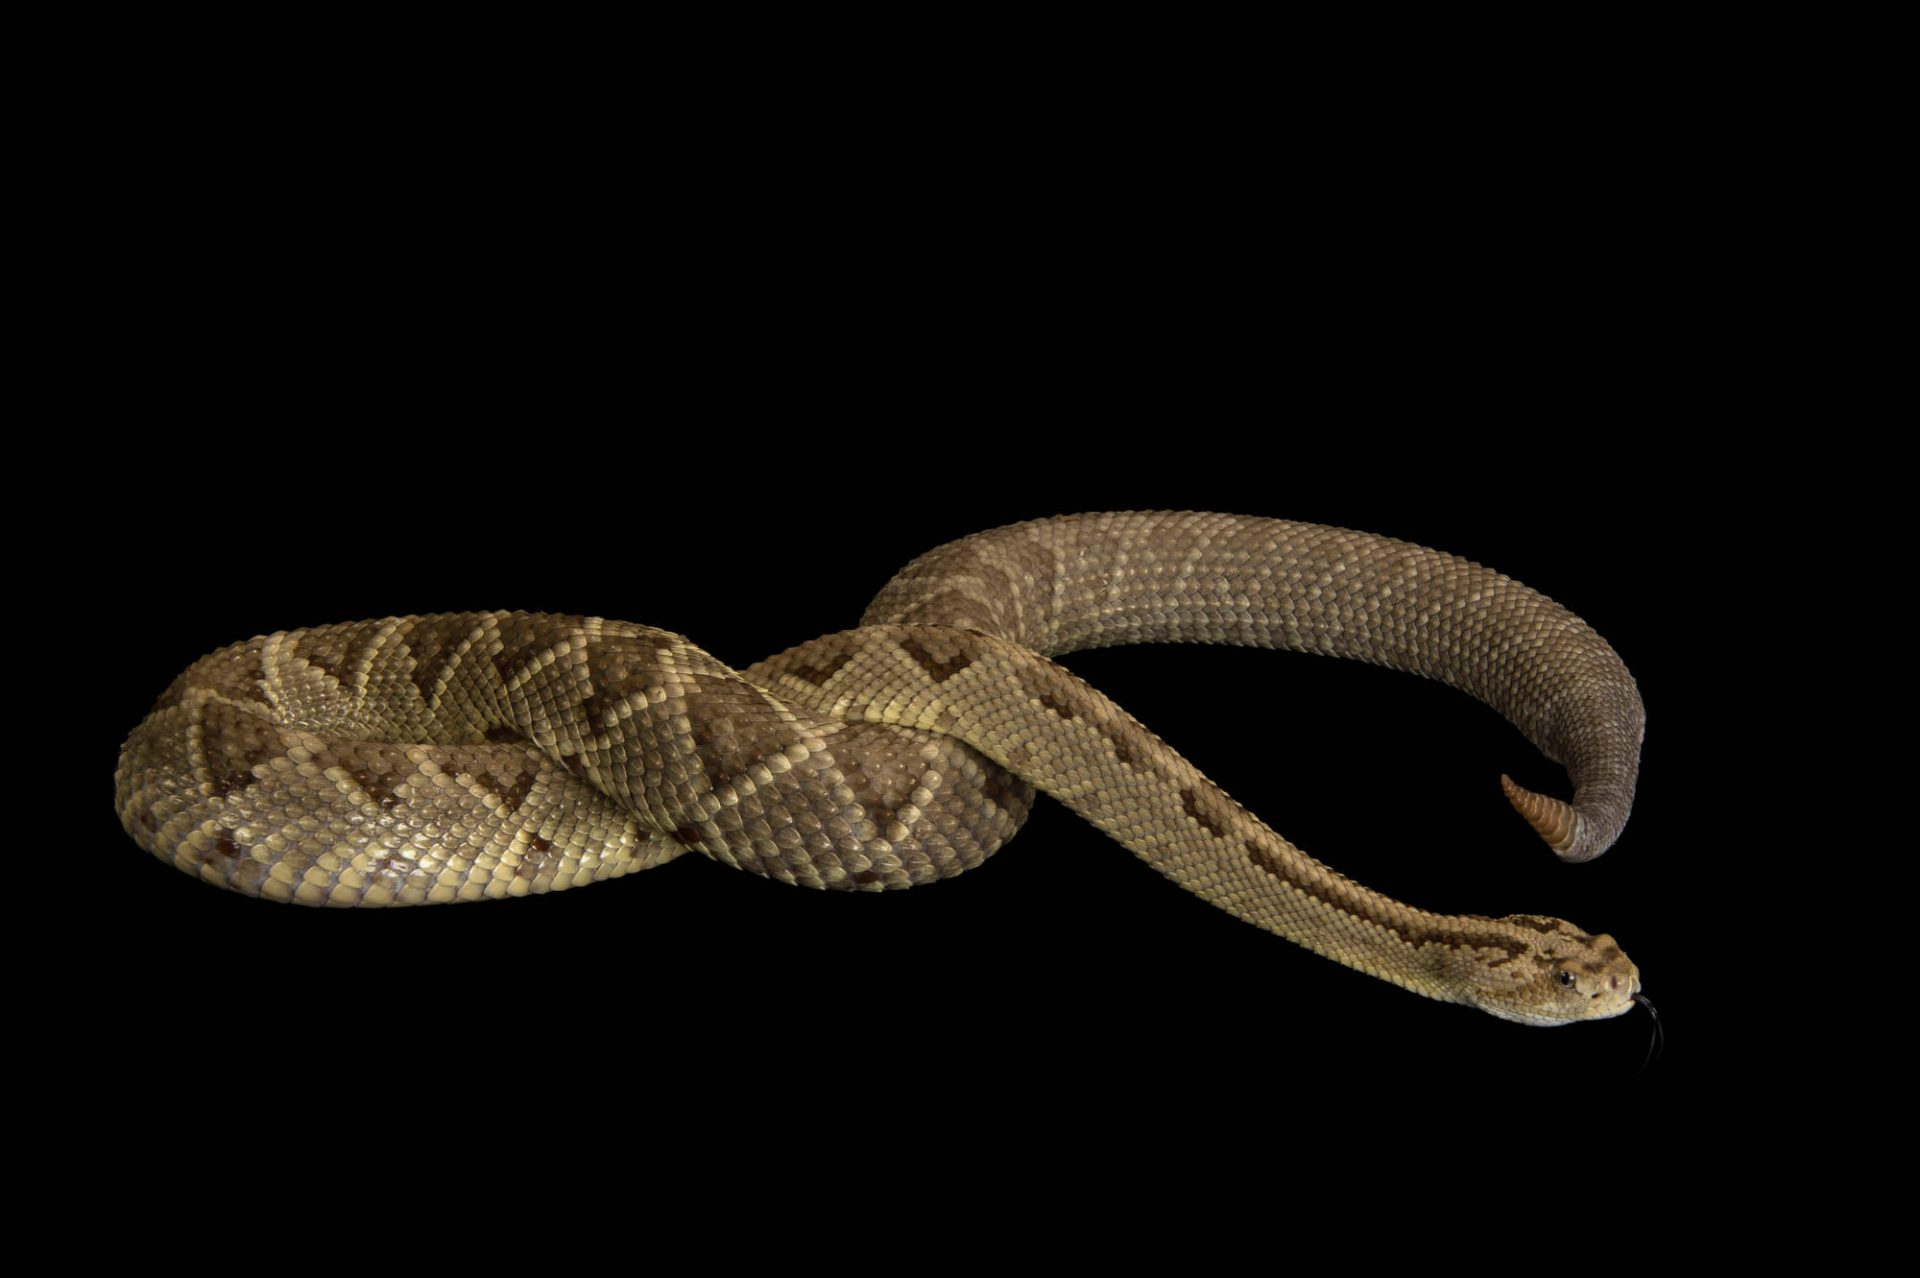 A Yucatan neotropical rattlesnake (Crotalus tzabcan) at Zoo Atlanta.